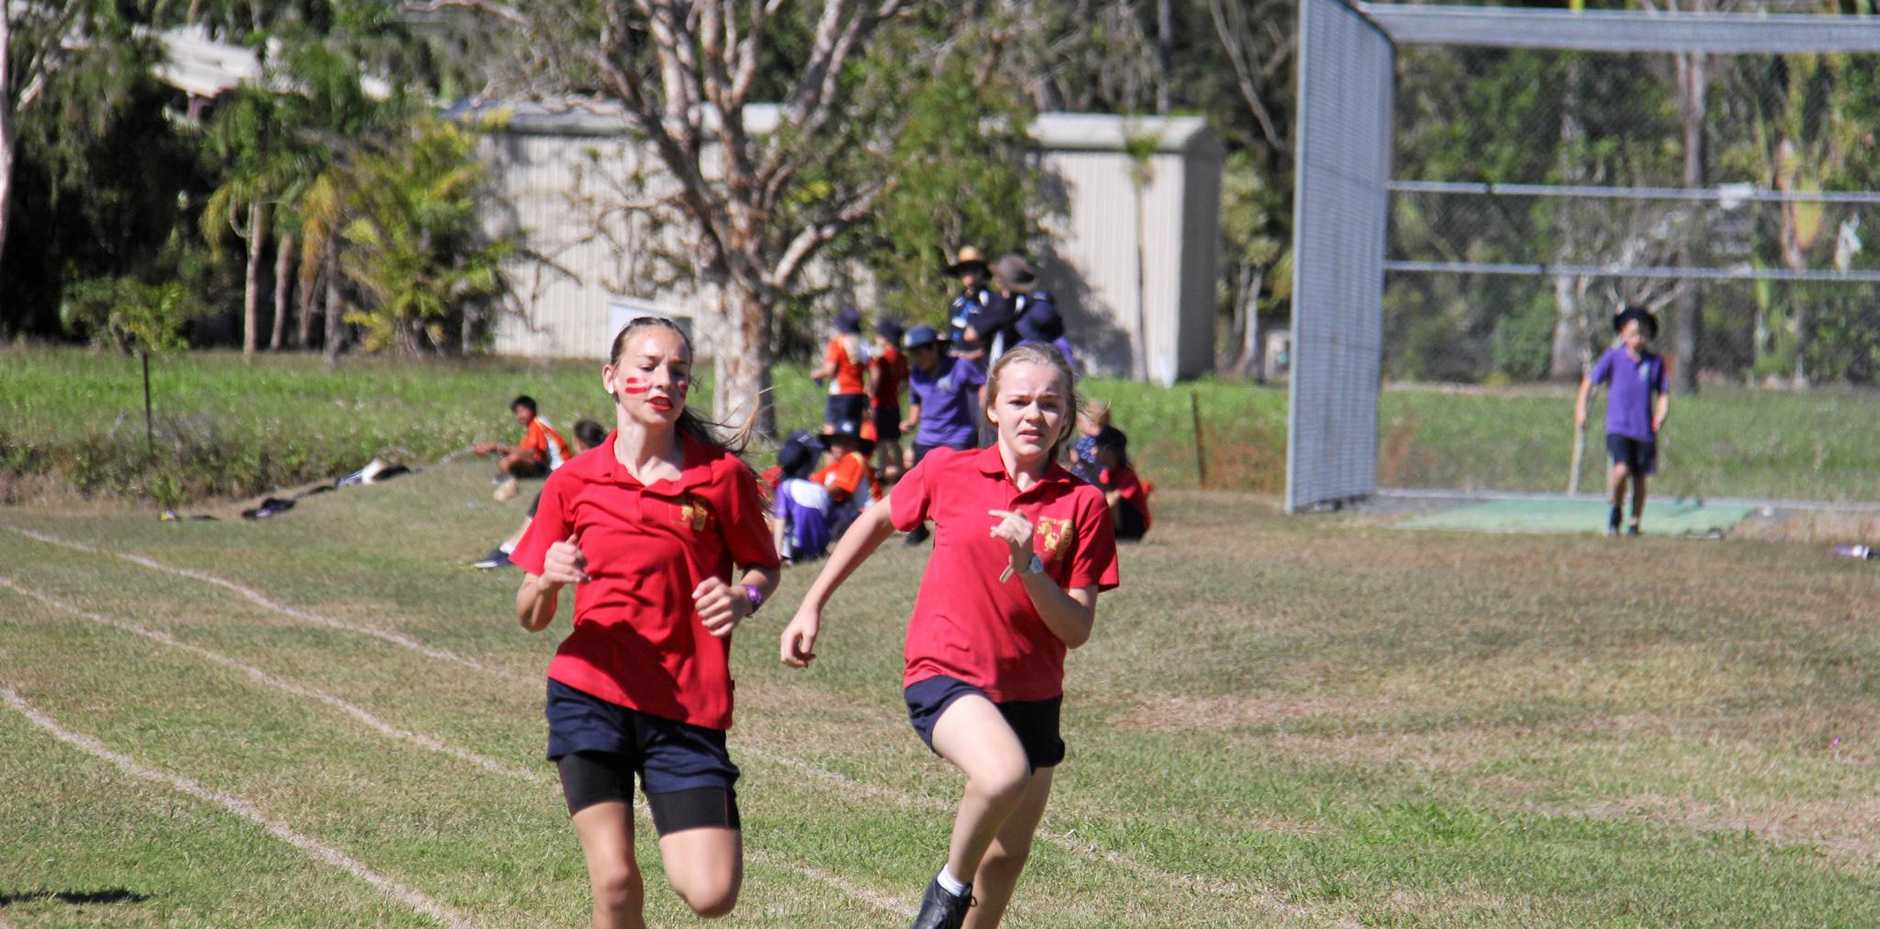 Daina Brown and Ebony Yeomans competed in the 100 m race.